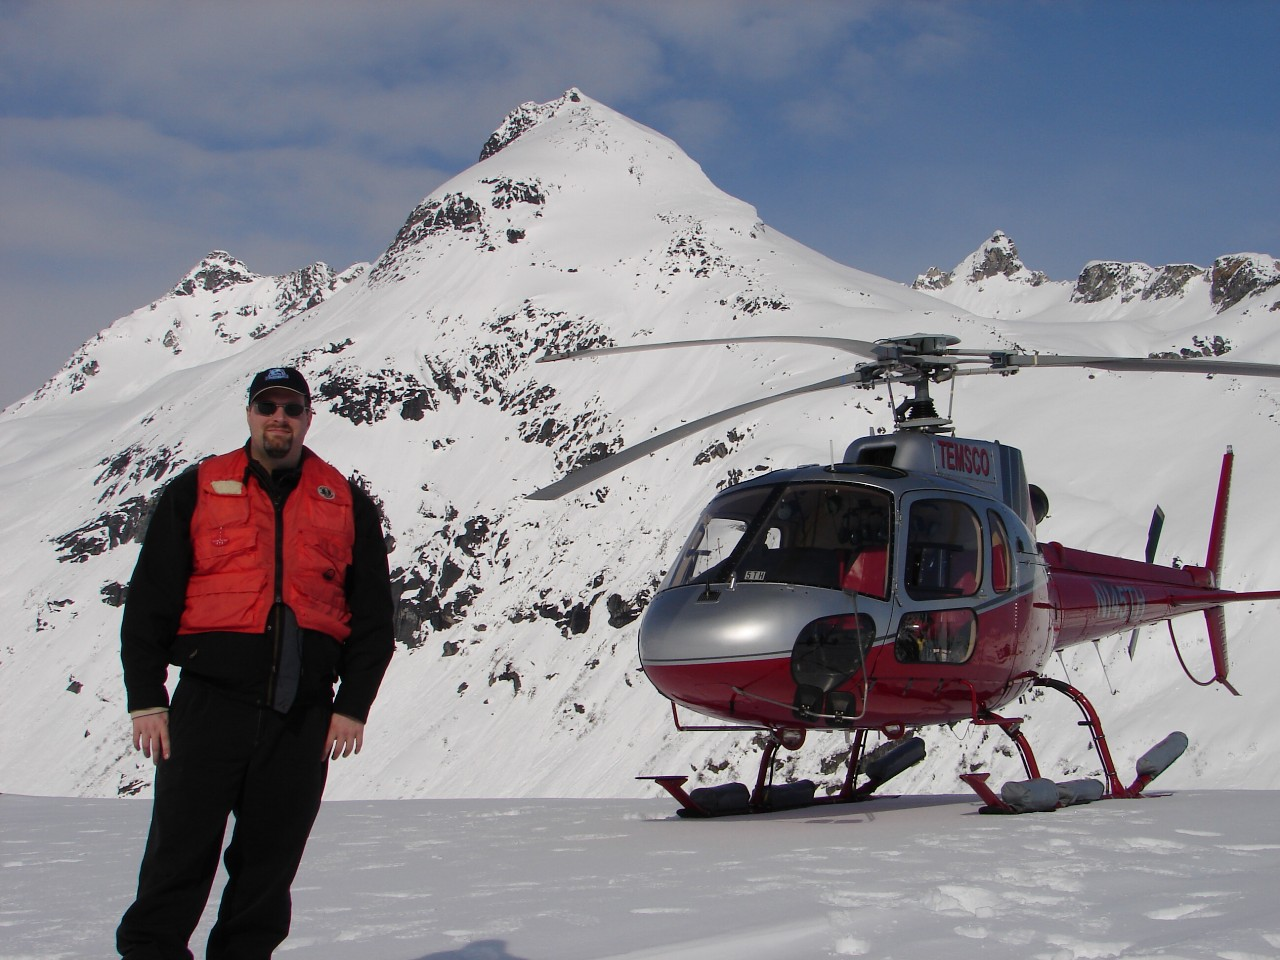 Richard with Helicopter during Glacier Tour